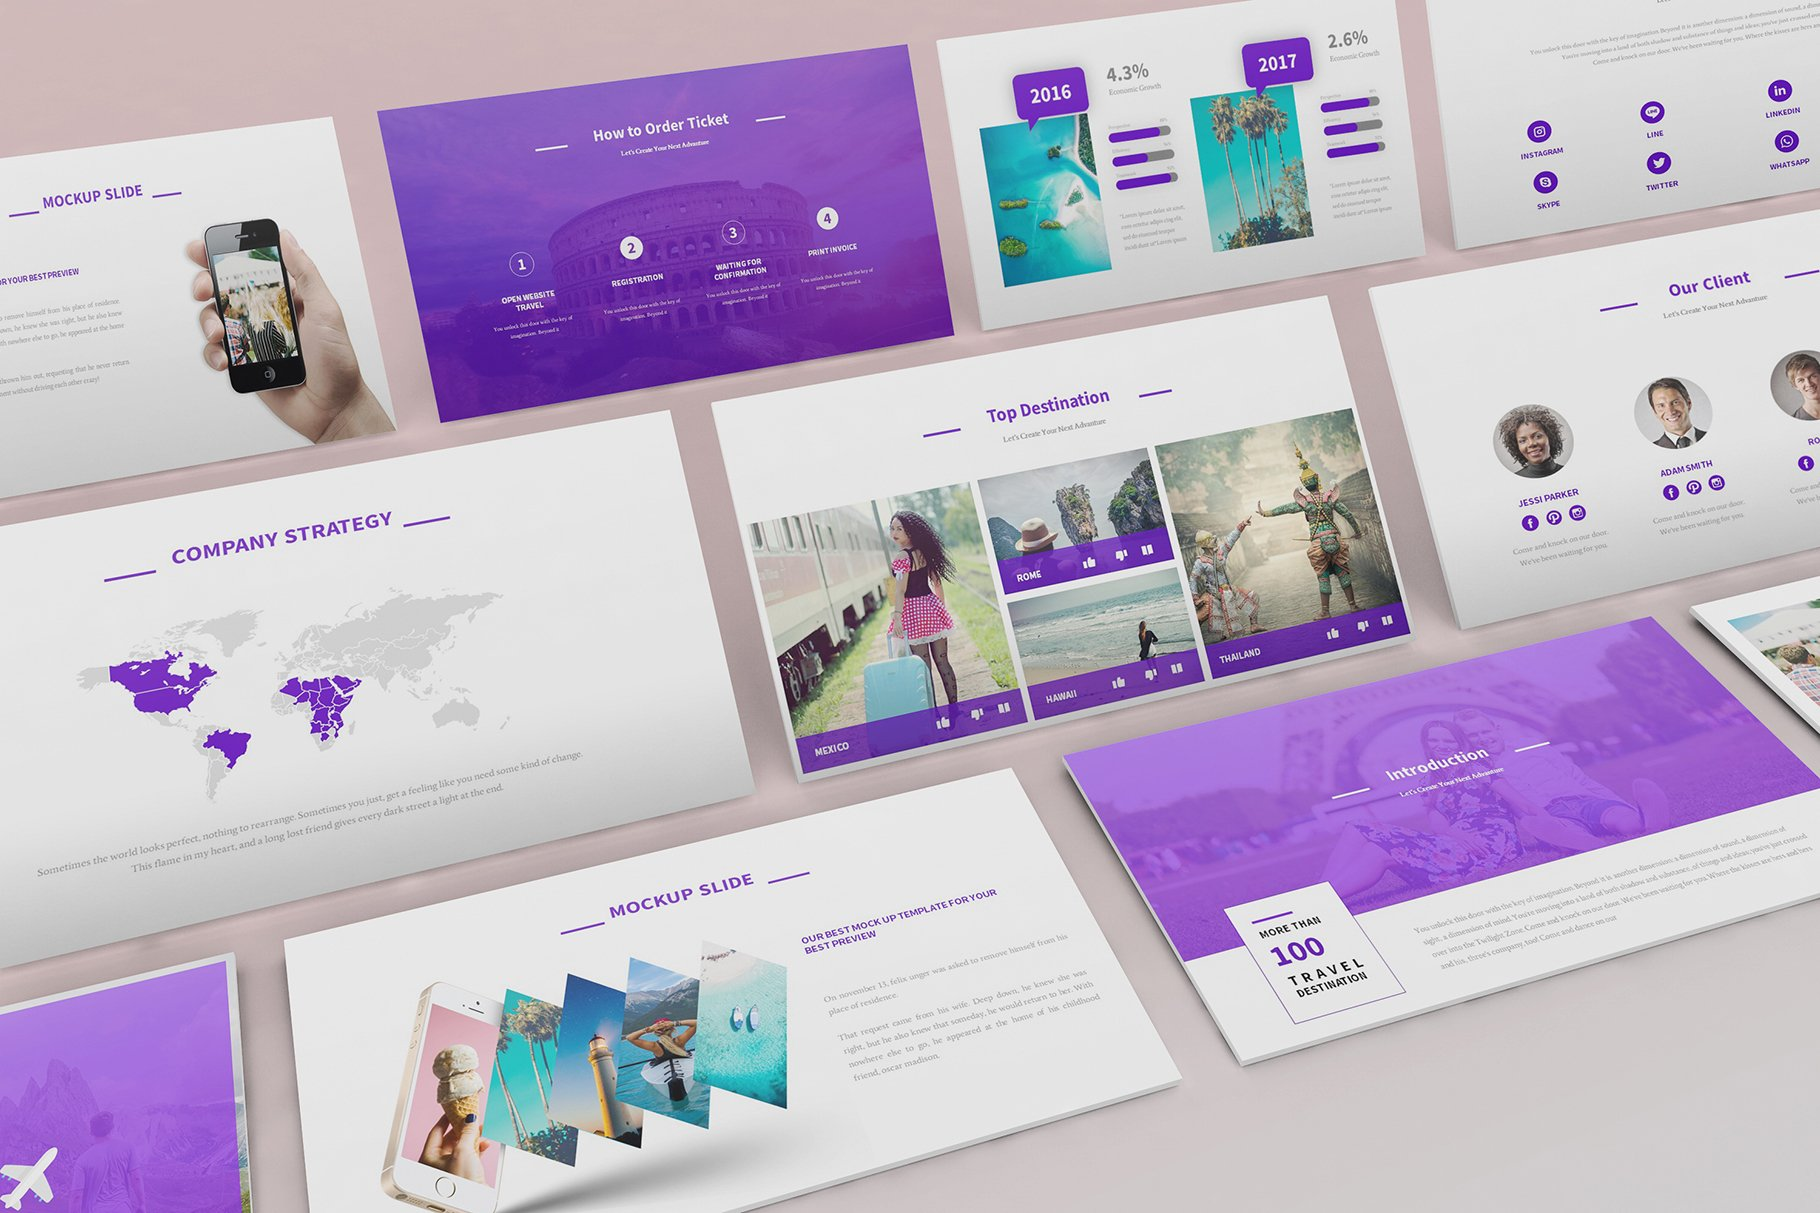 Travel agency powerpoint template 2288707 nulled travel agency powerpoint template presentations 3 toneelgroepblik Choice Image